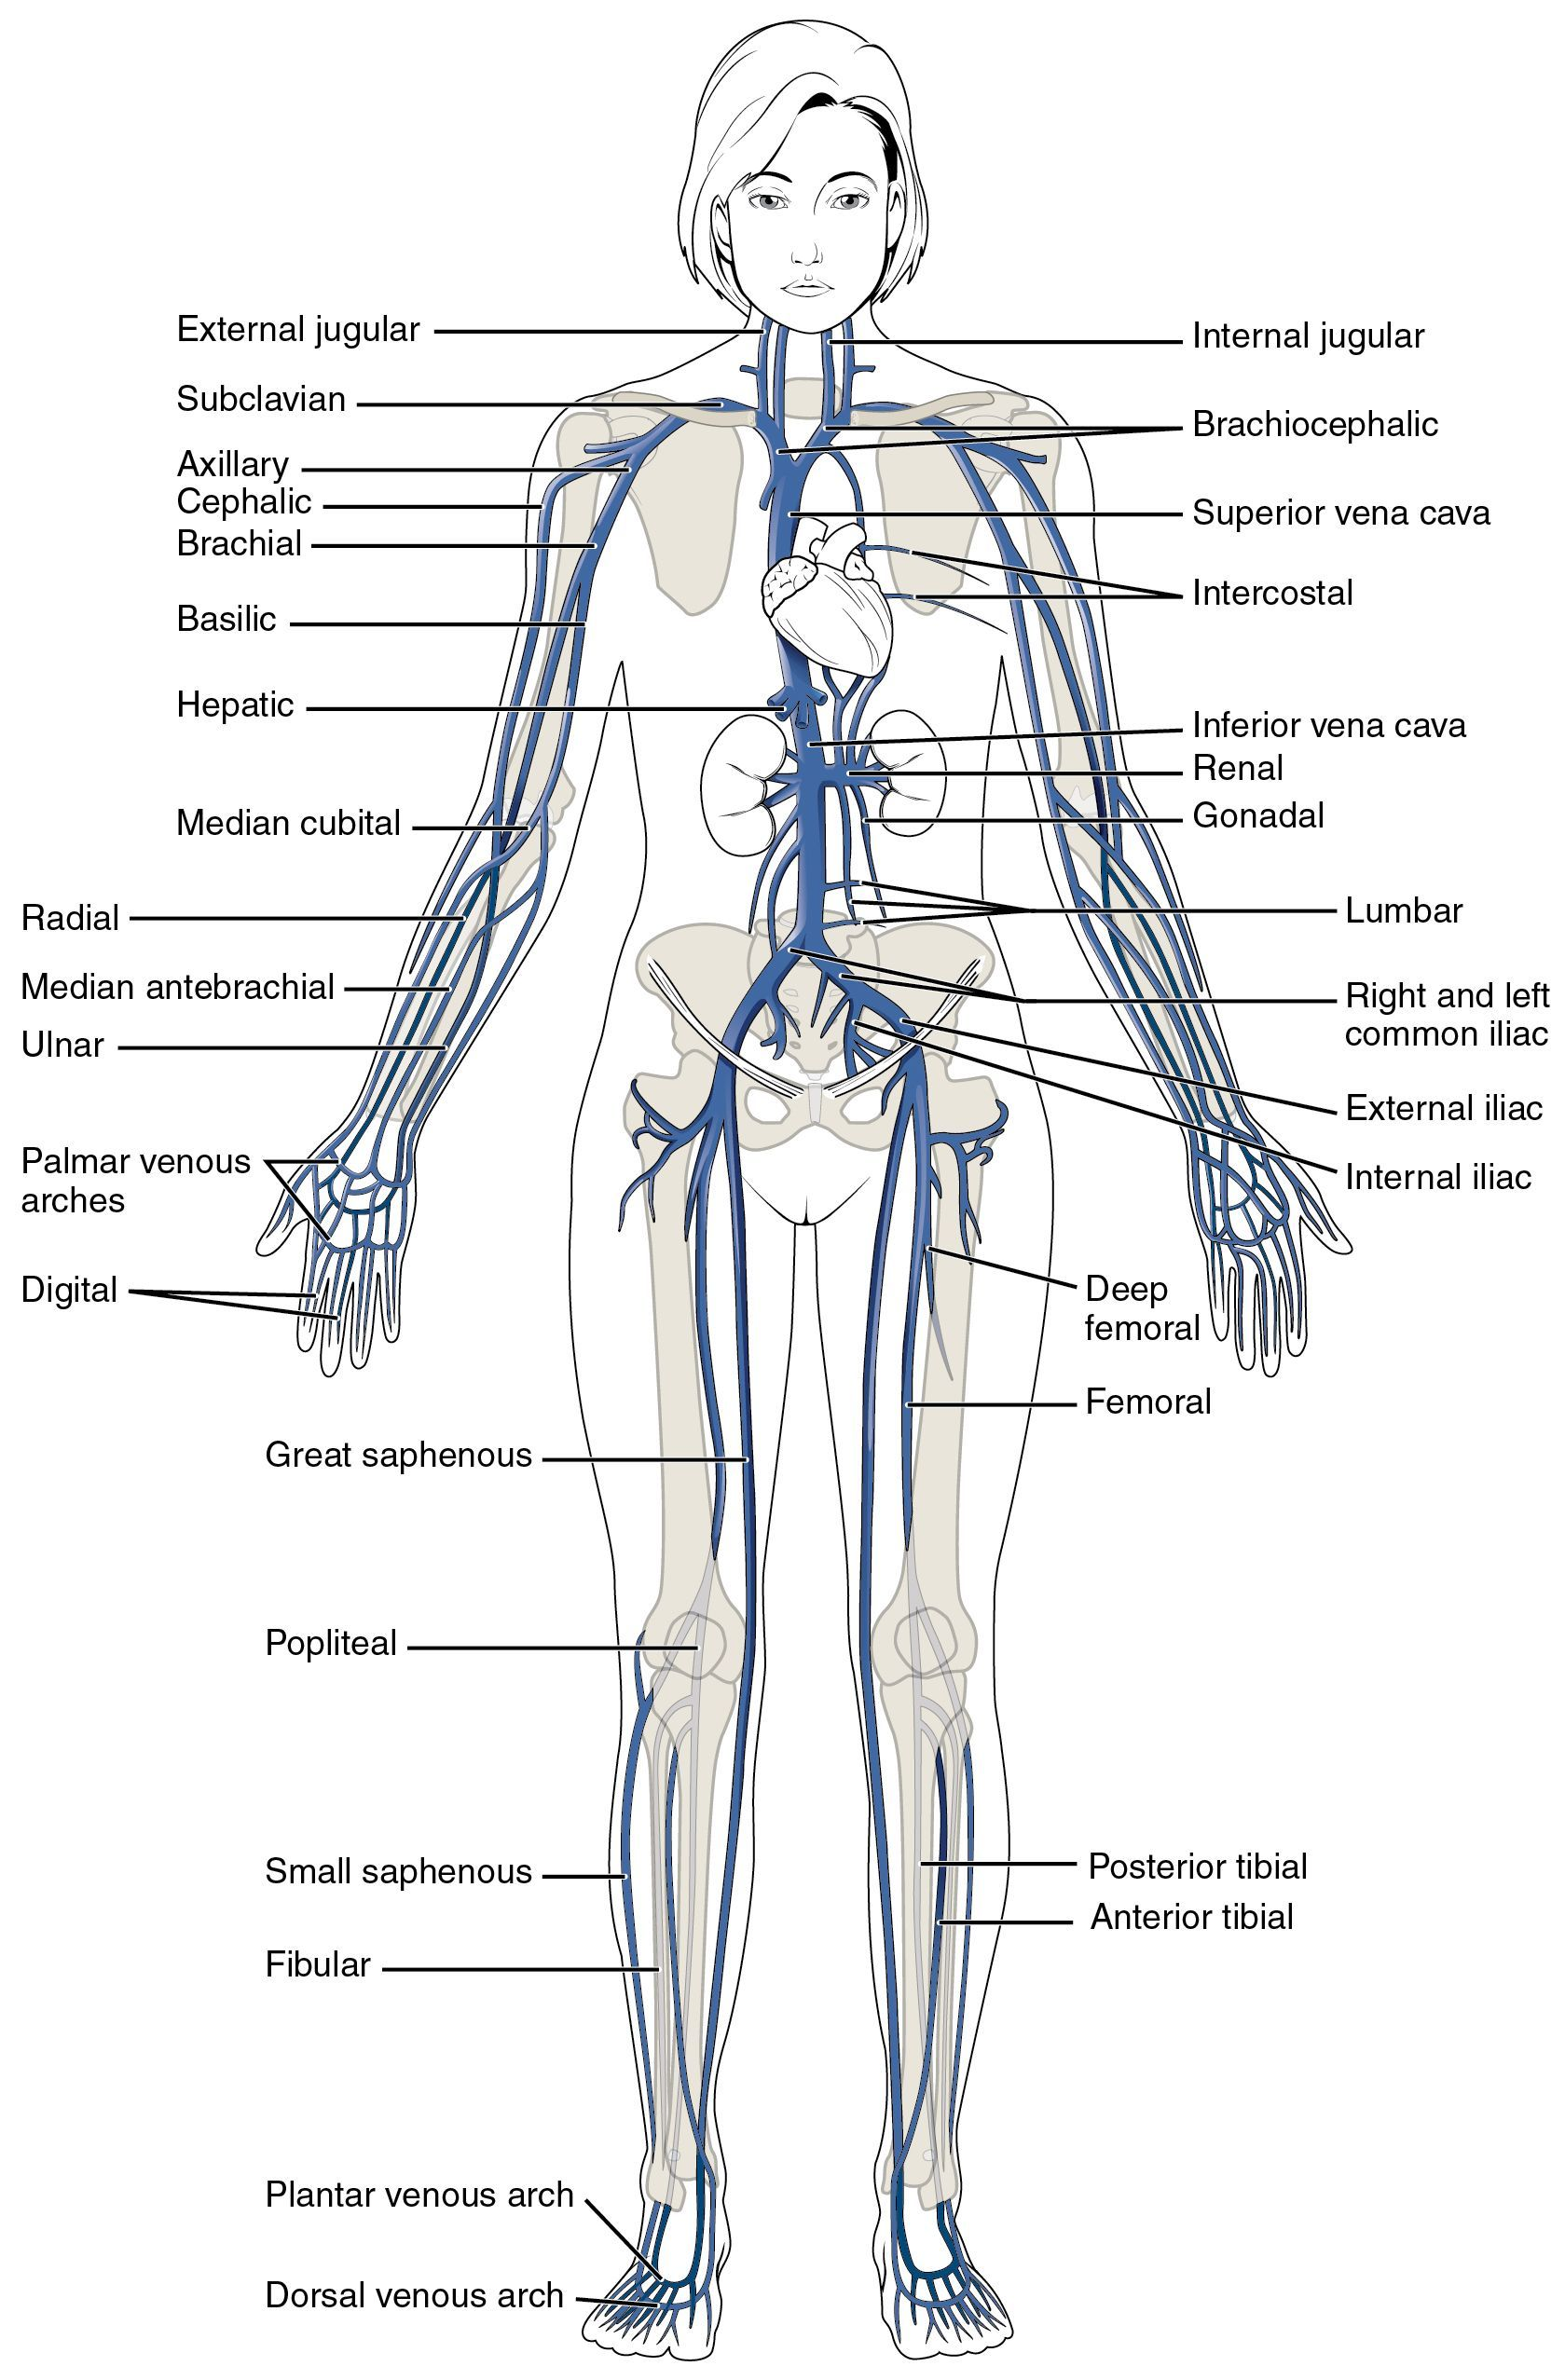 hight resolution of blank human body diagram blank human body diagram human body diagram with labels inspirational blank